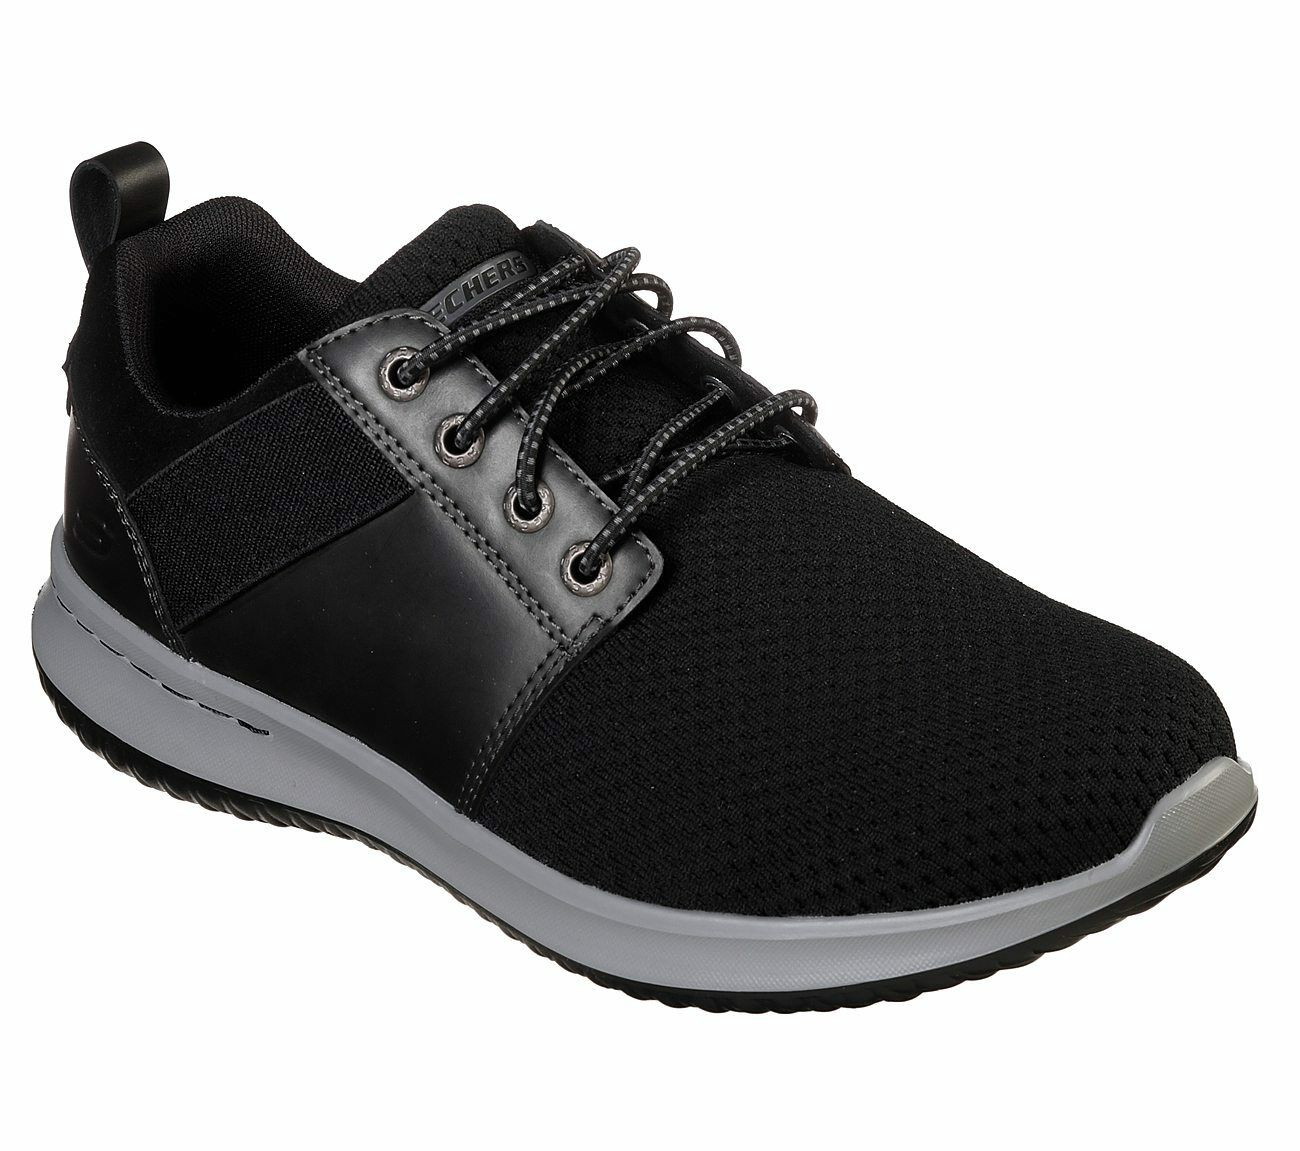 Skechers shoes Black Men's Air Memory Foam Comfort Casual Sp